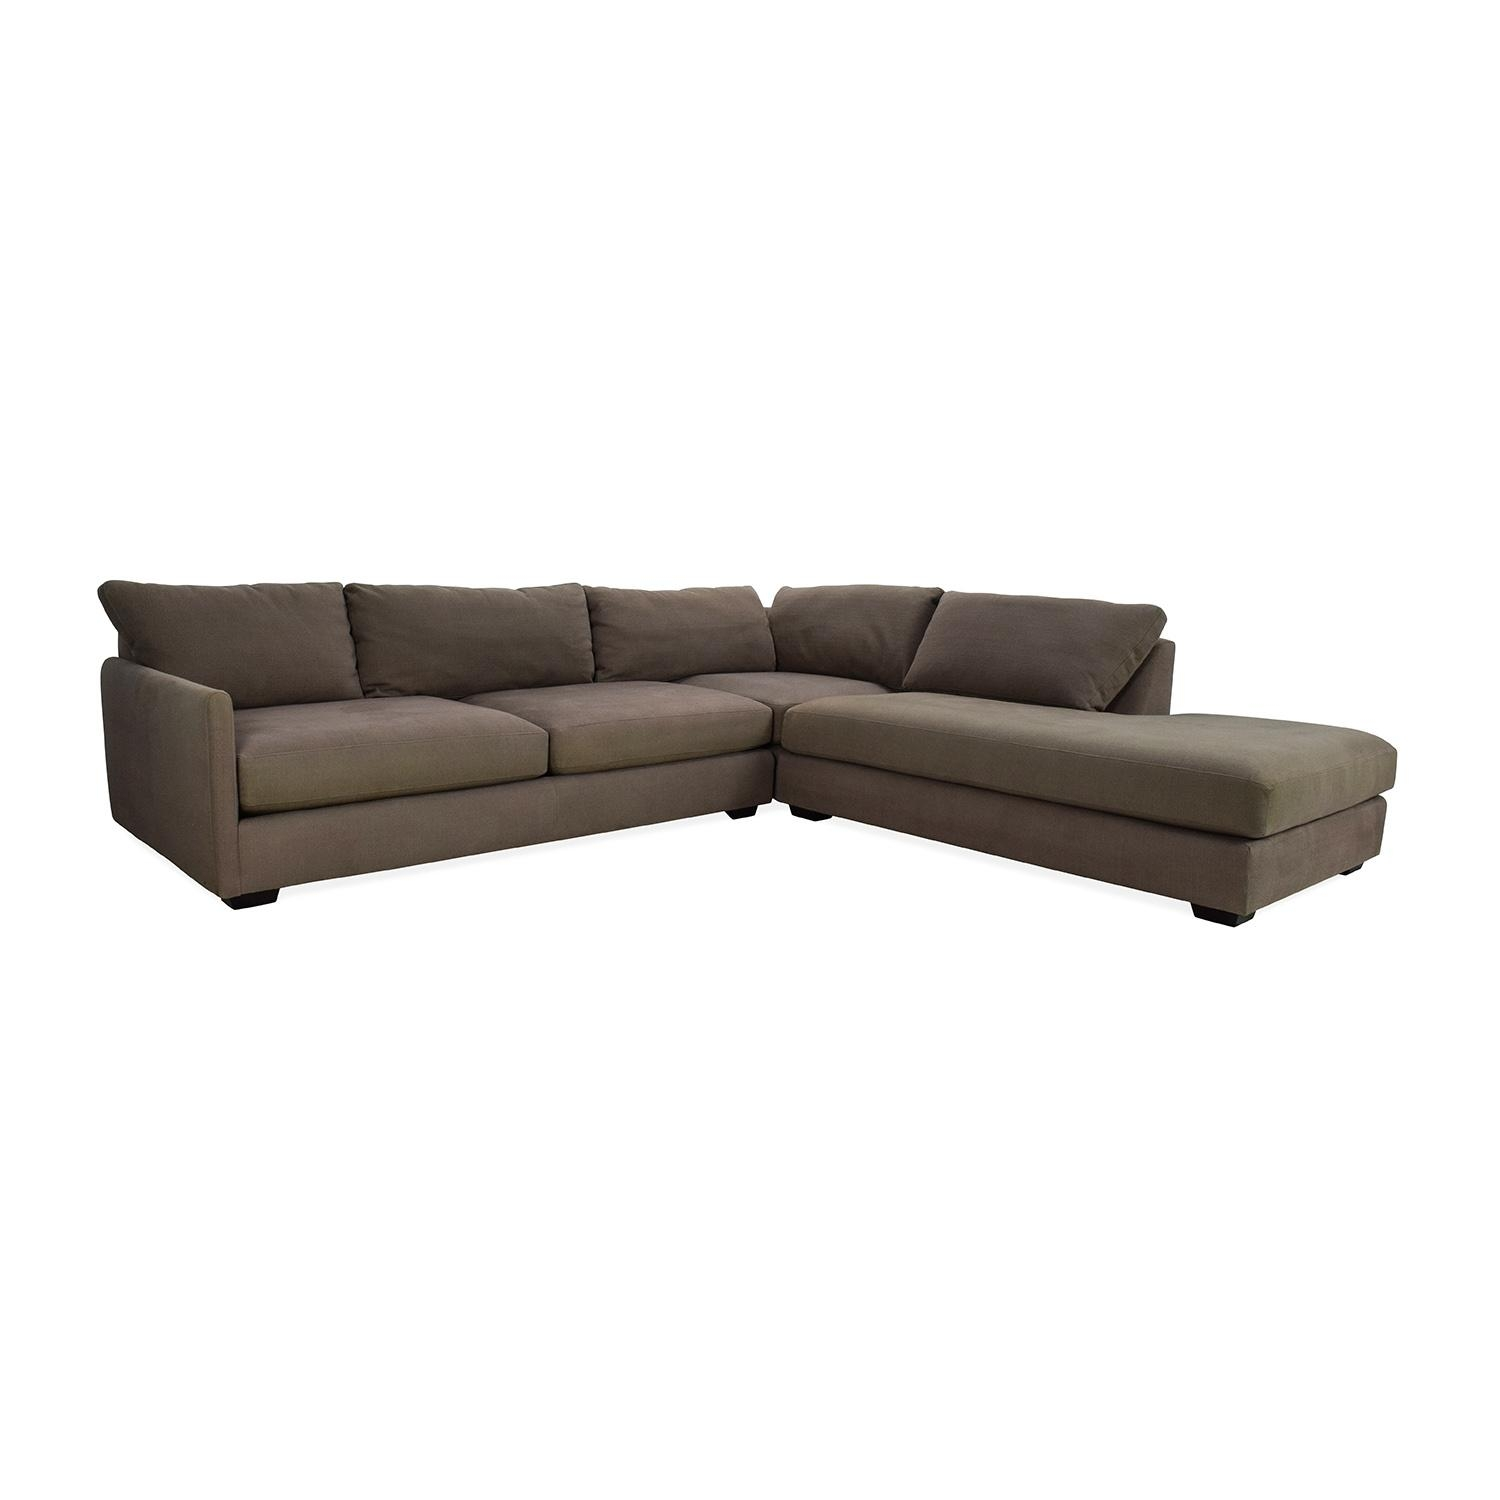 82% Off – Crate And Barrel Crate & Barrel Domino Sectional Sofa With Regard To Sectional Crate And Barrel (Photo 11 of 20)